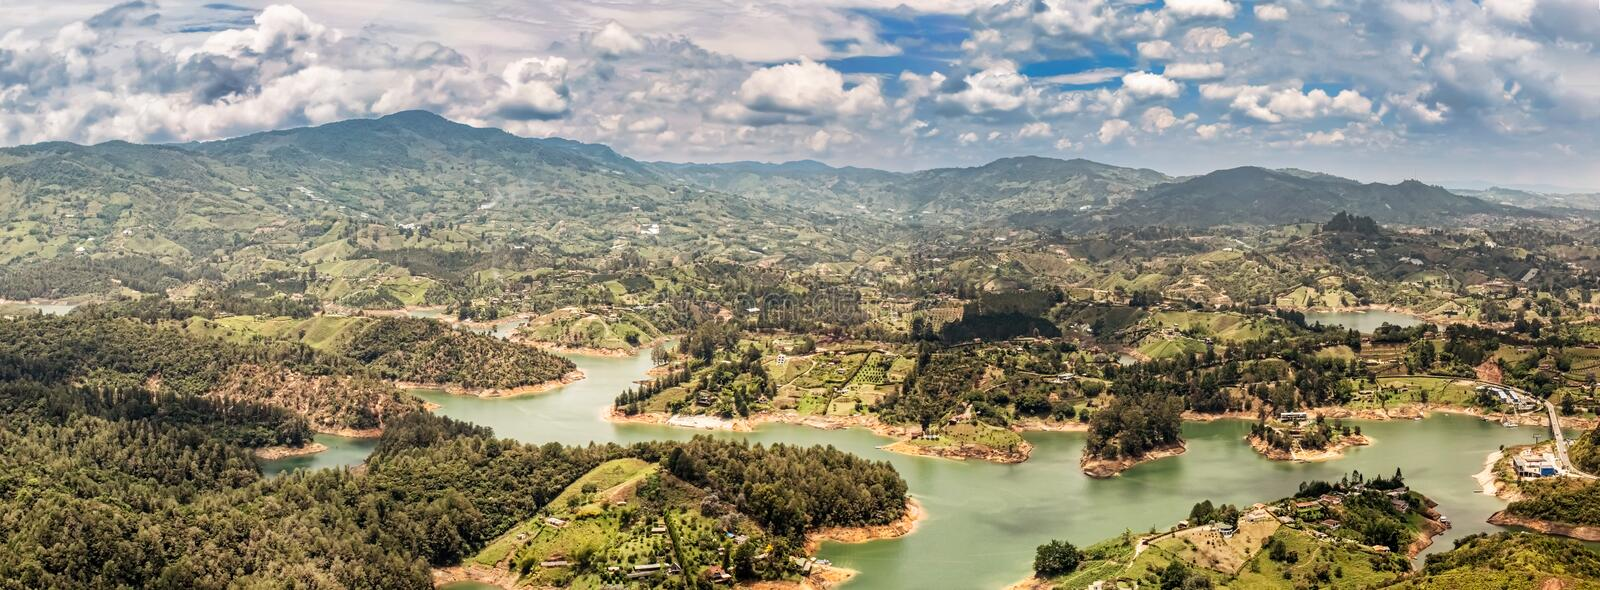 Aerial view of Guatape, Penol, dam lake in Colombia. Aerial view of Guatape, Penol, dam lake in Colombia as seen from the viewpoint at the top of The rock El stock photo